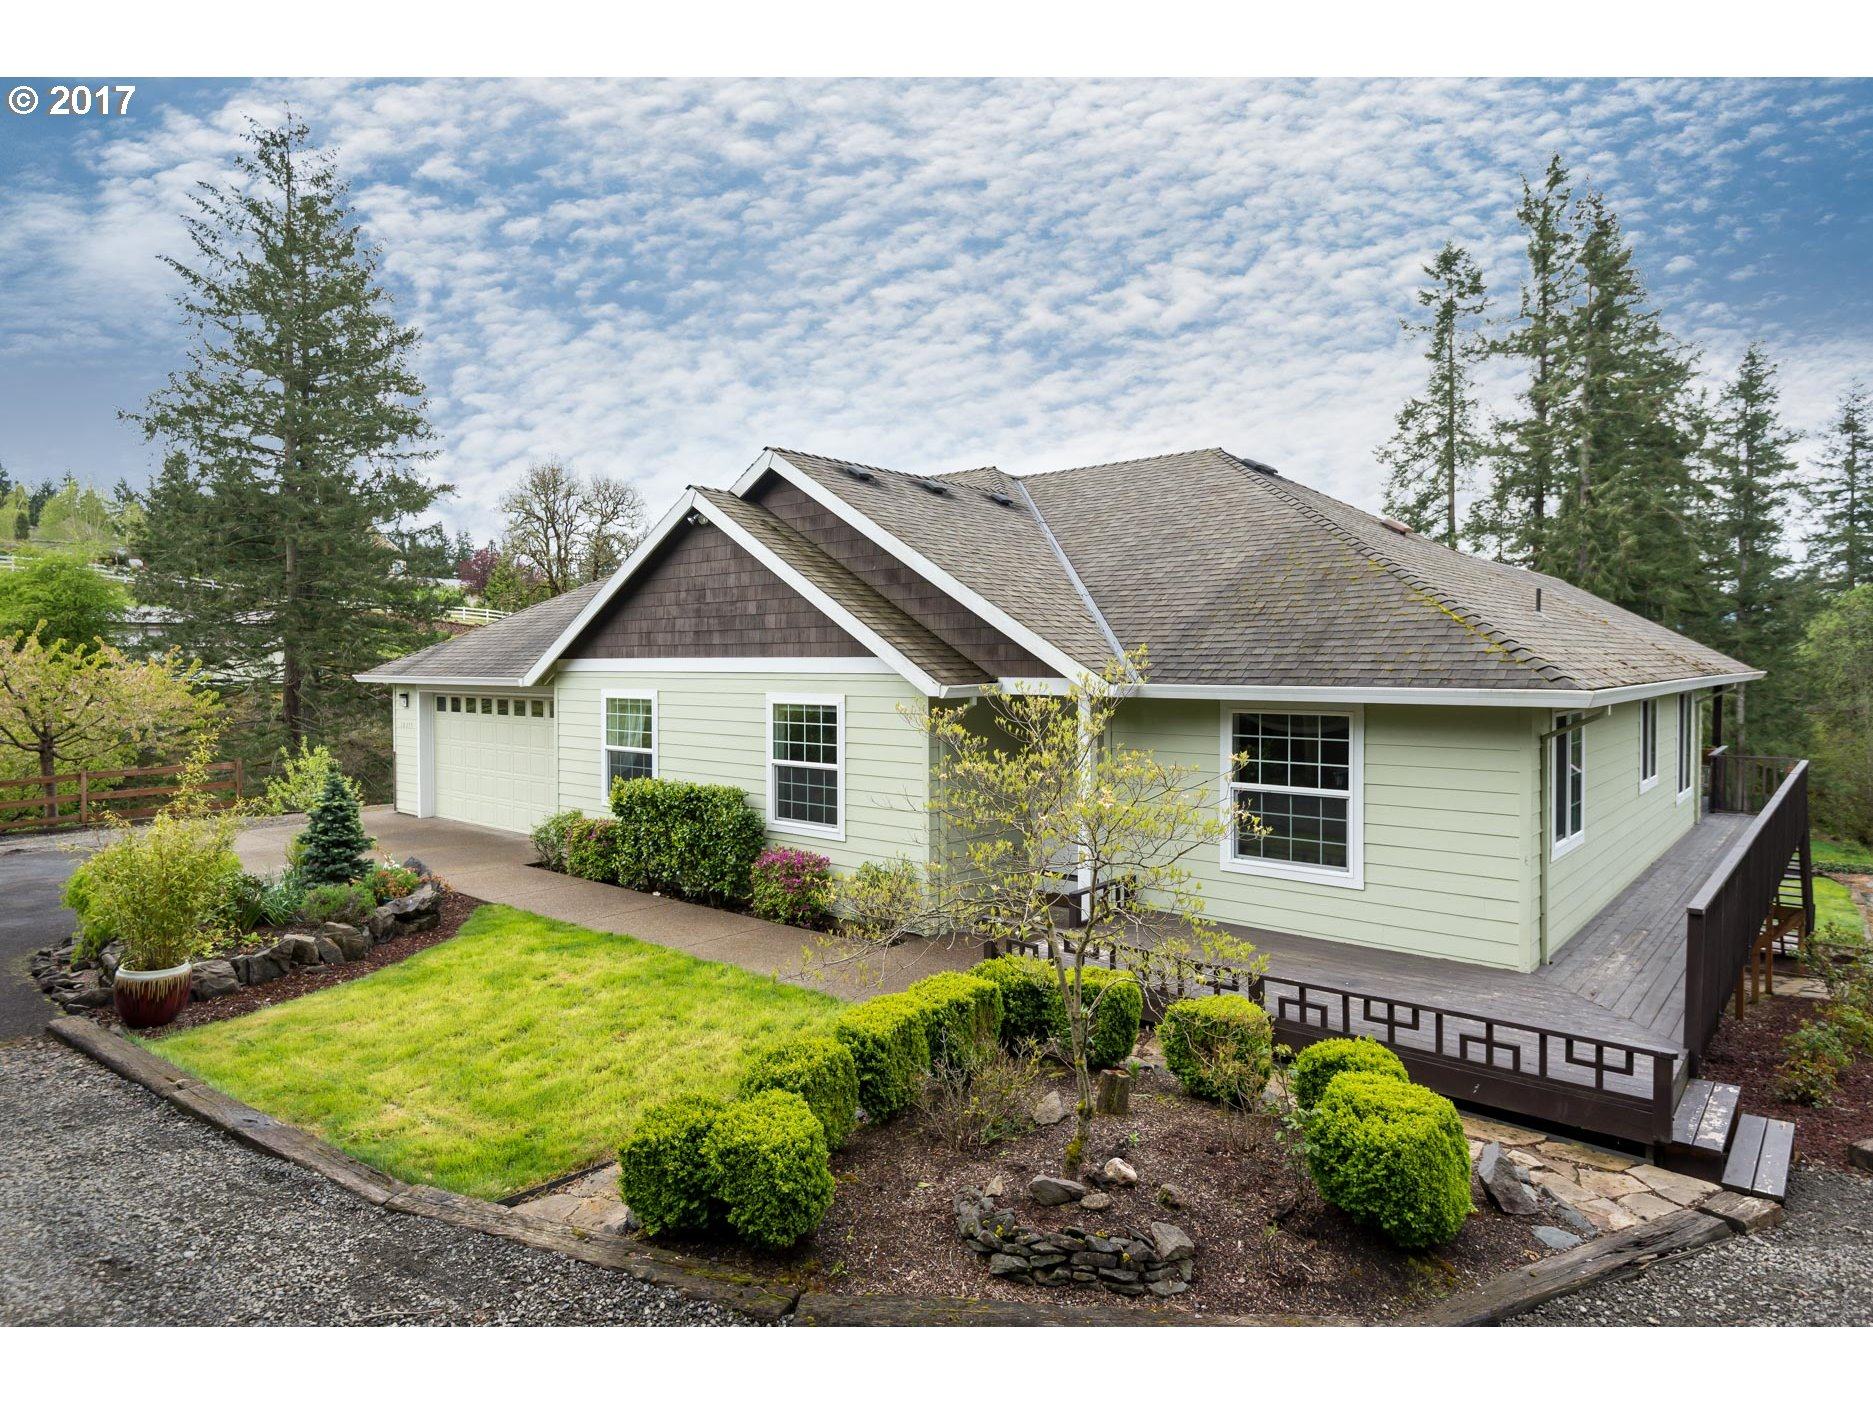 18375 S NORMAN RD, Oregon City, OR 97045